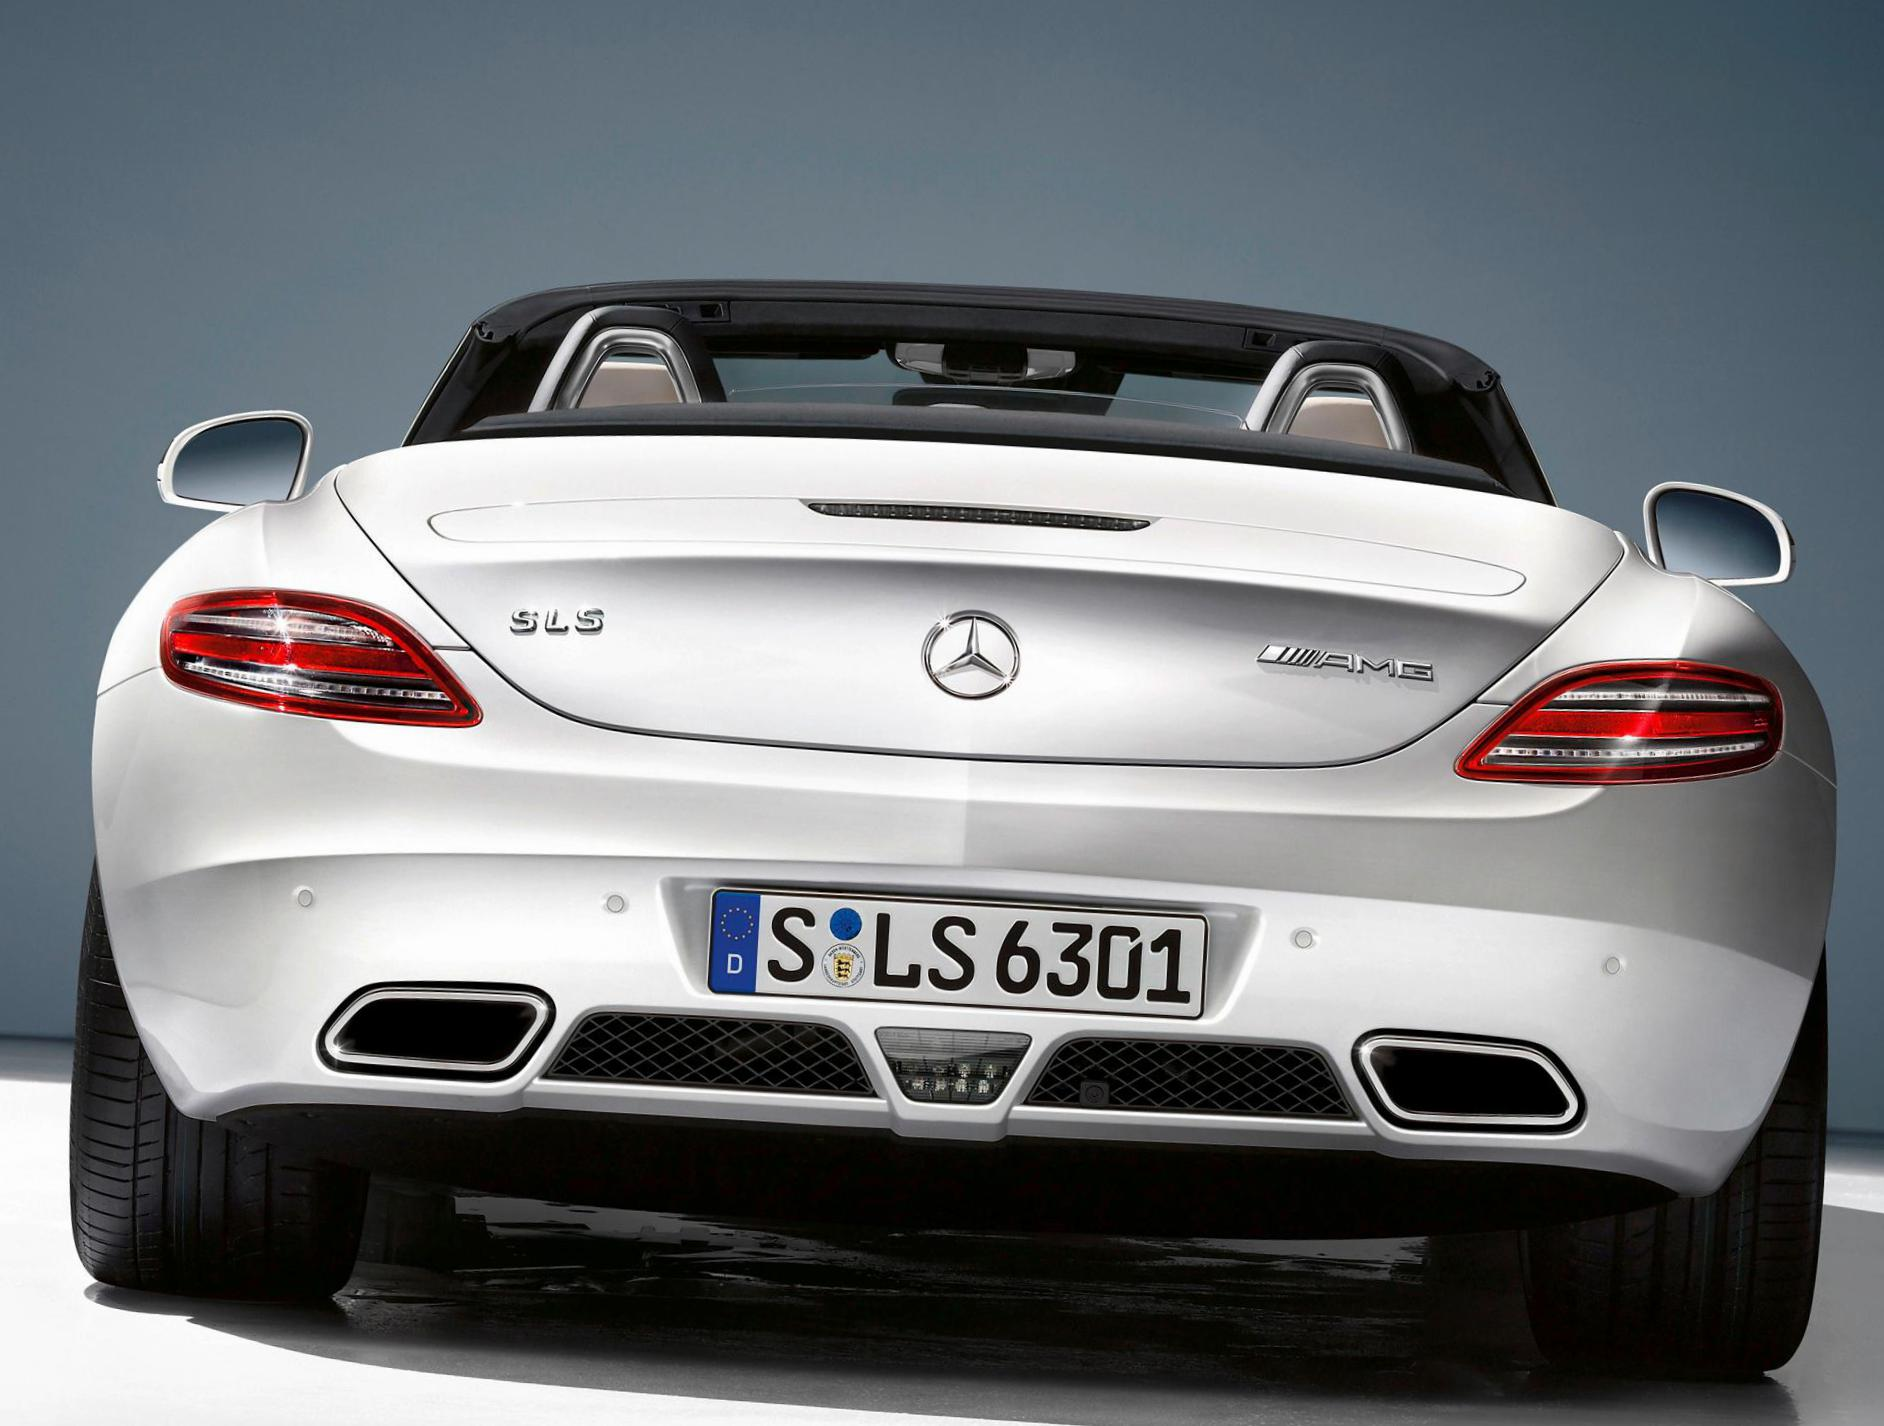 Mercedes SLS AMG Roadster (R197) prices 2013